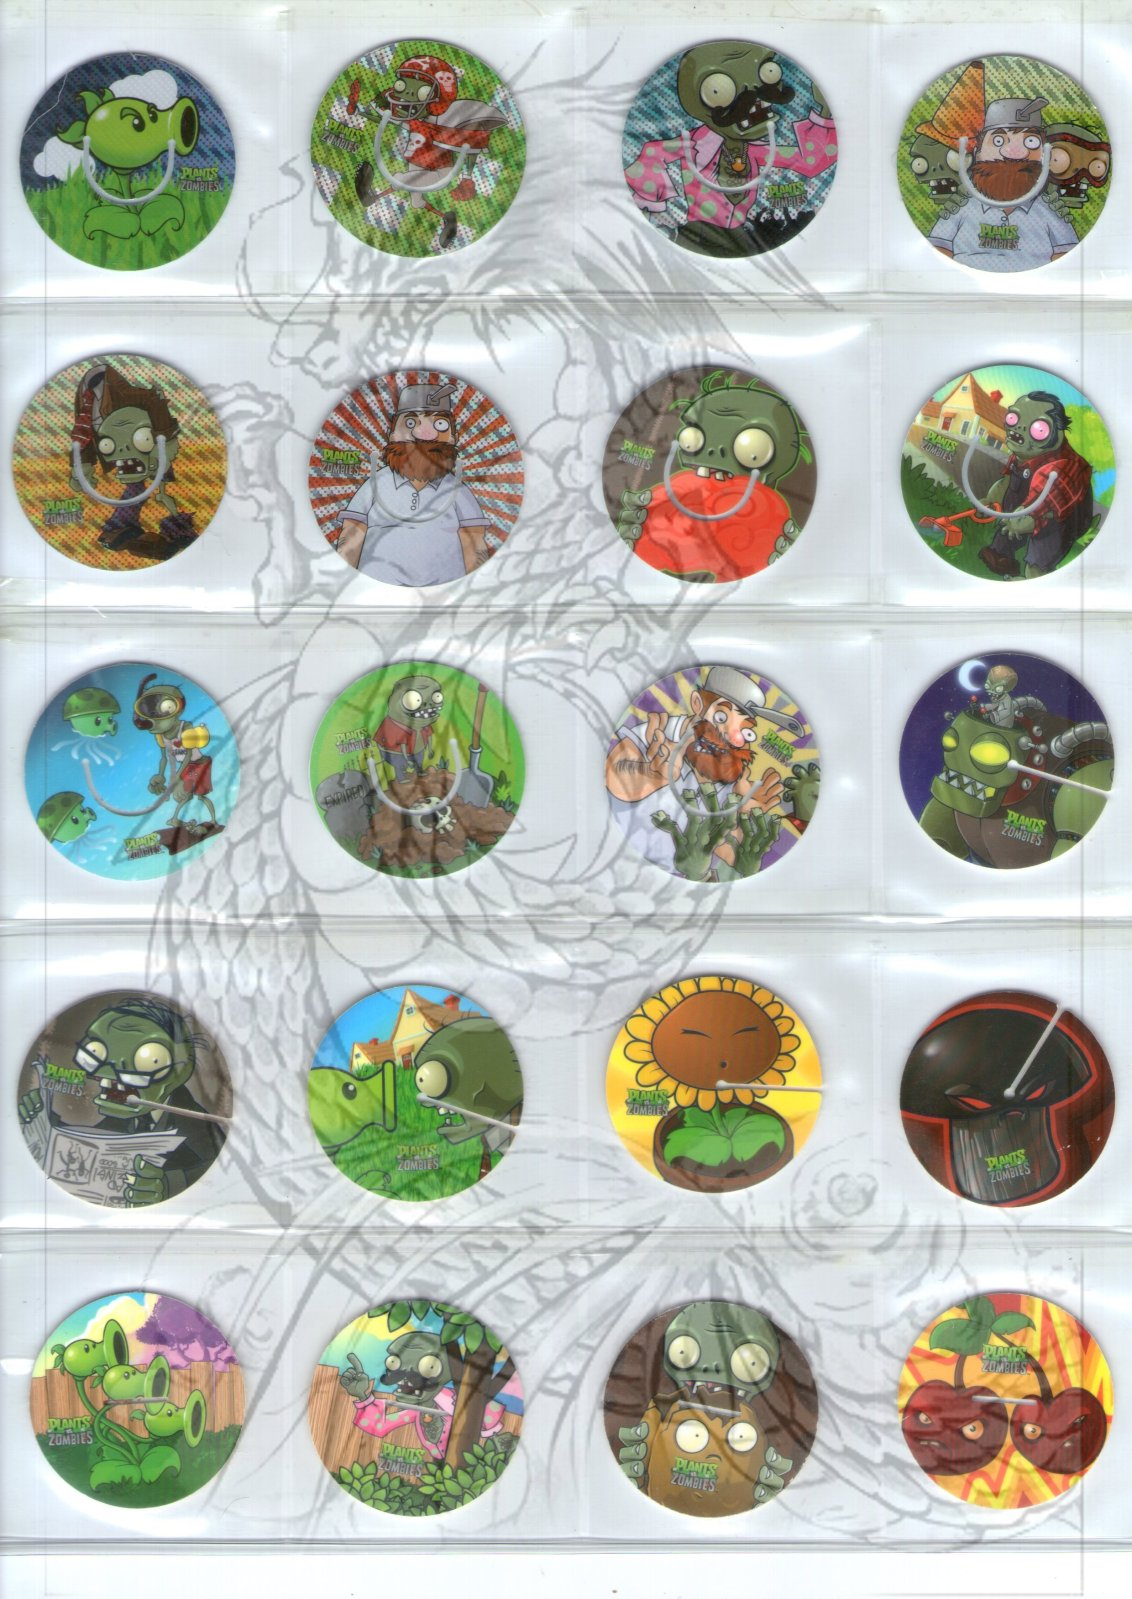 Tazos Plantas Vs Zombies de SABRITAS 30w3td5